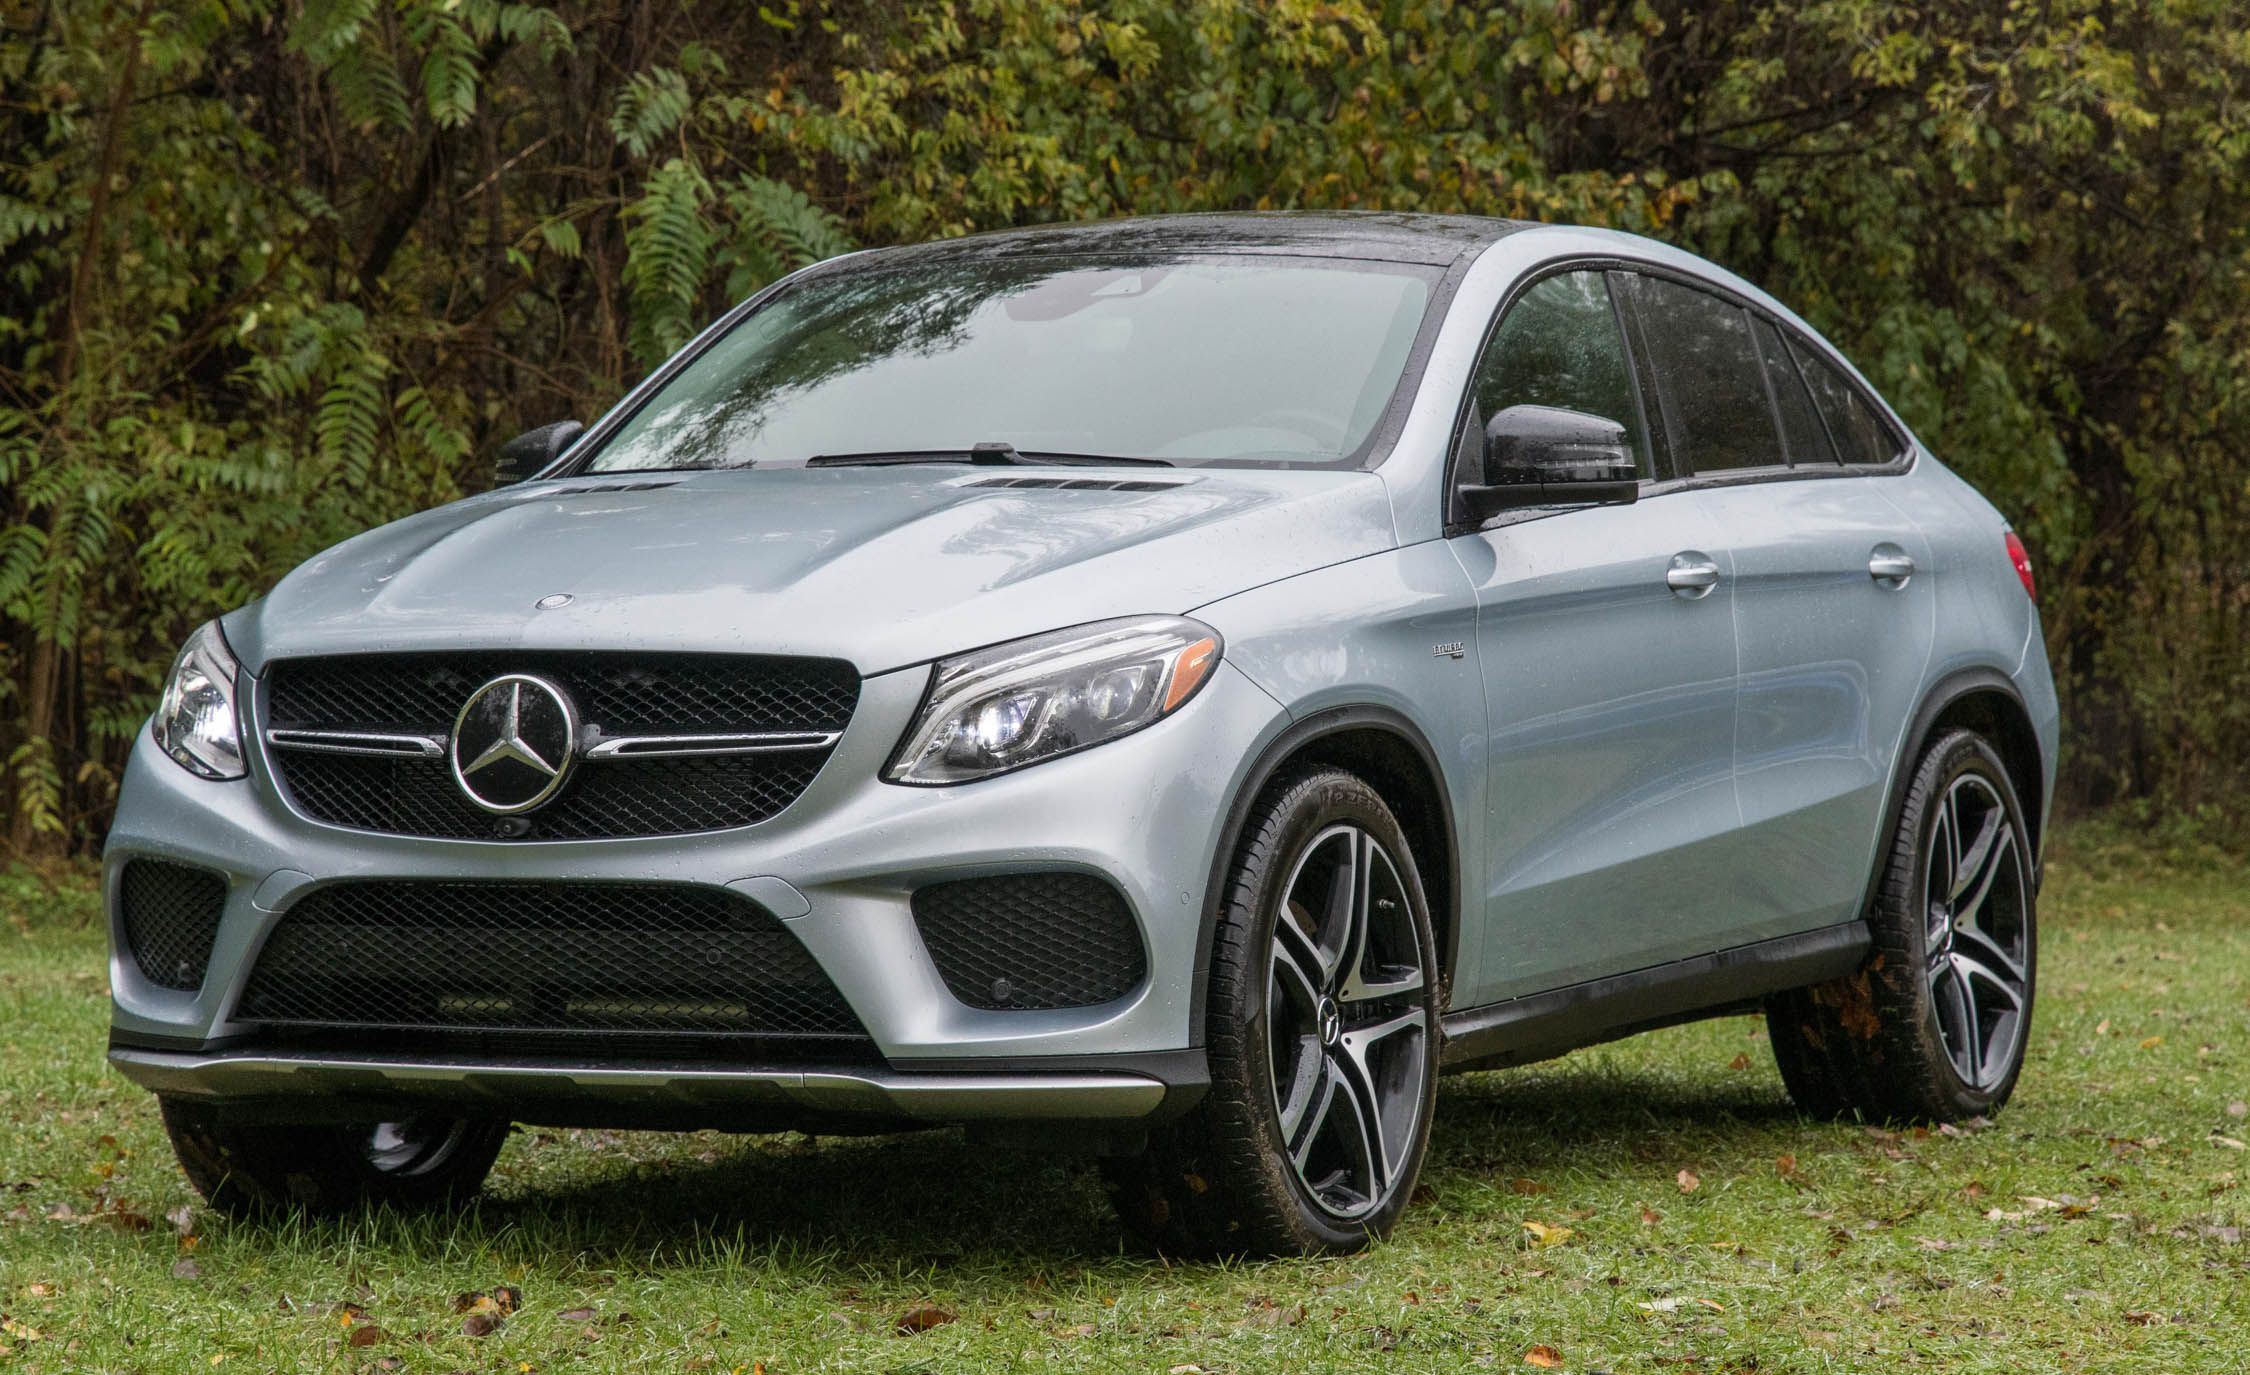 Mercedes Amg Gle43 Coupe 4matic Gle63 S Reviews Price Photos And Specs Car